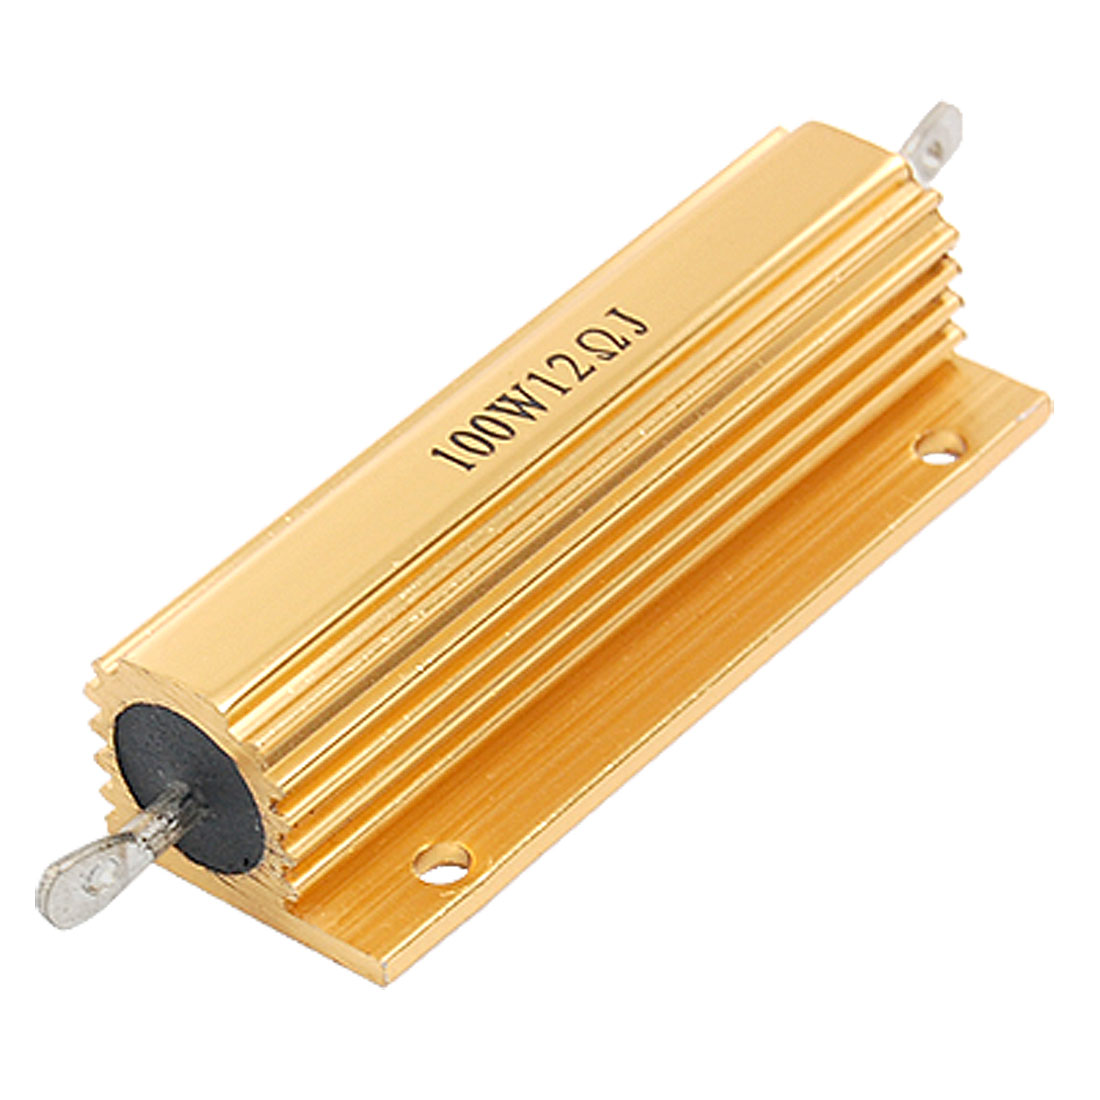 Gold Tone Aluminum Housed Casing Resistor 12 Ohm 5% 100W